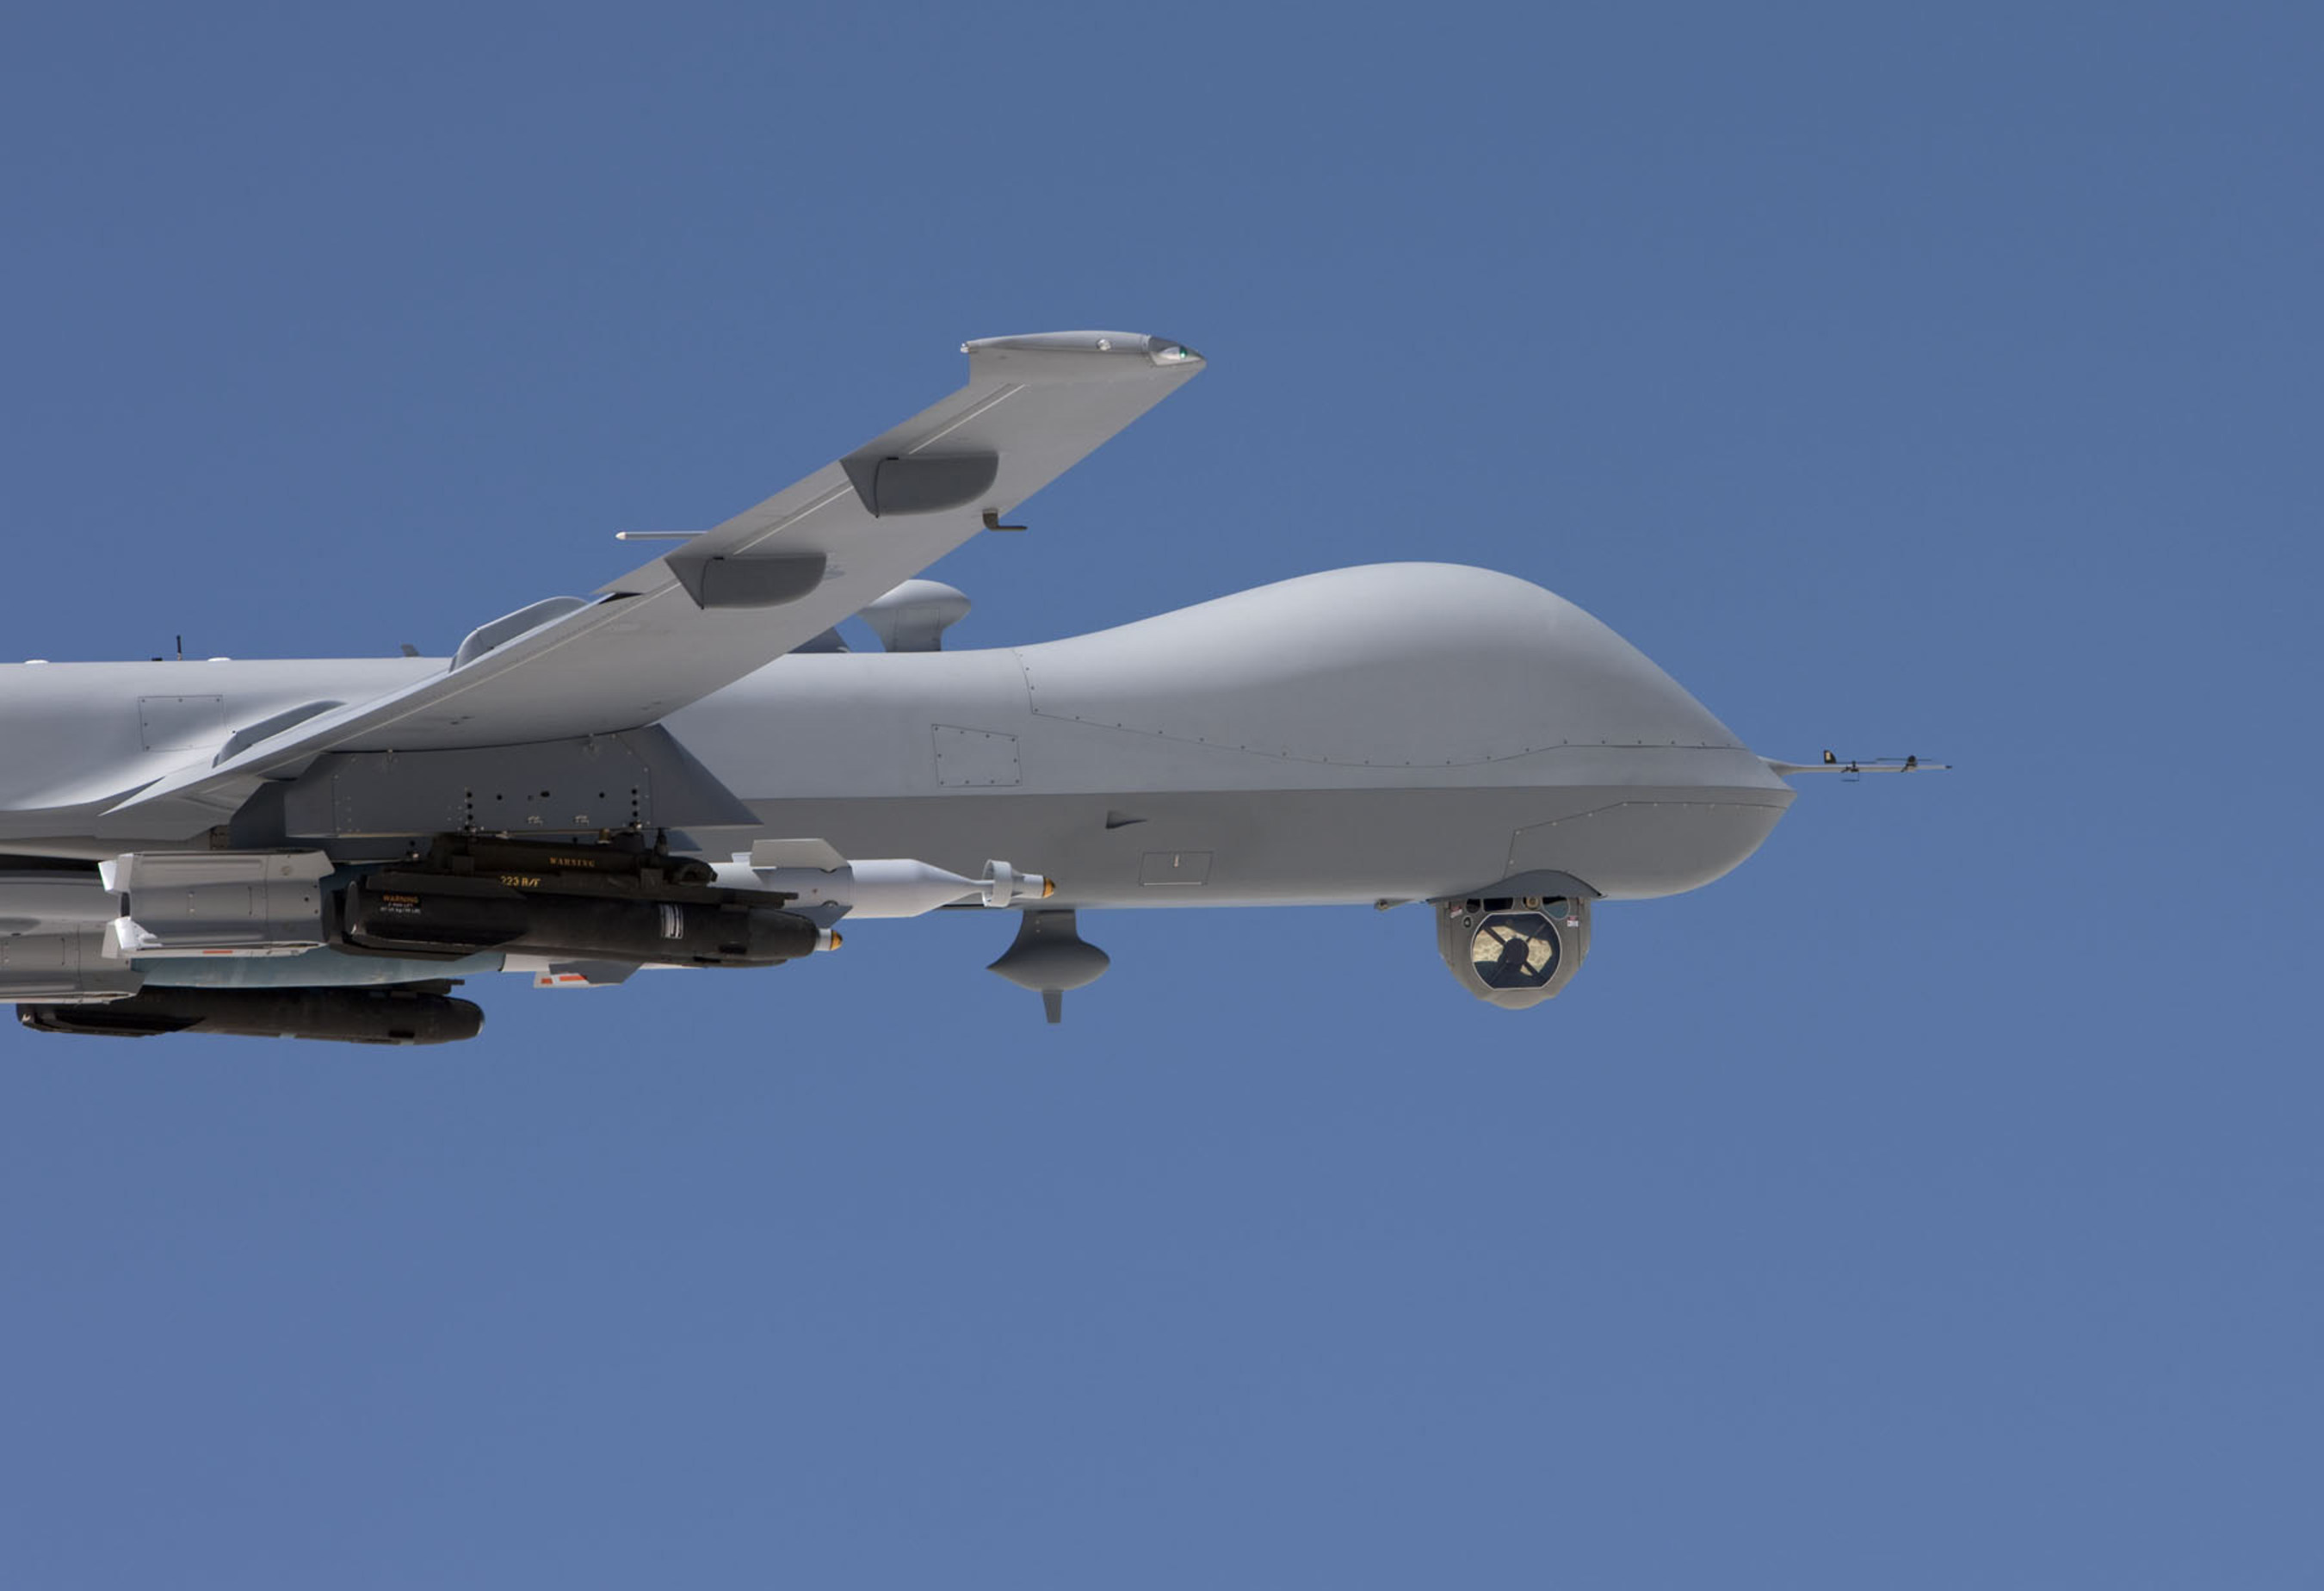 The U.S. Air Force has awarded Raytheon a first-lot production contract for the AN/DAS-4 EO/IR Turret, shown here deployed on the MQ-9 Reaper.